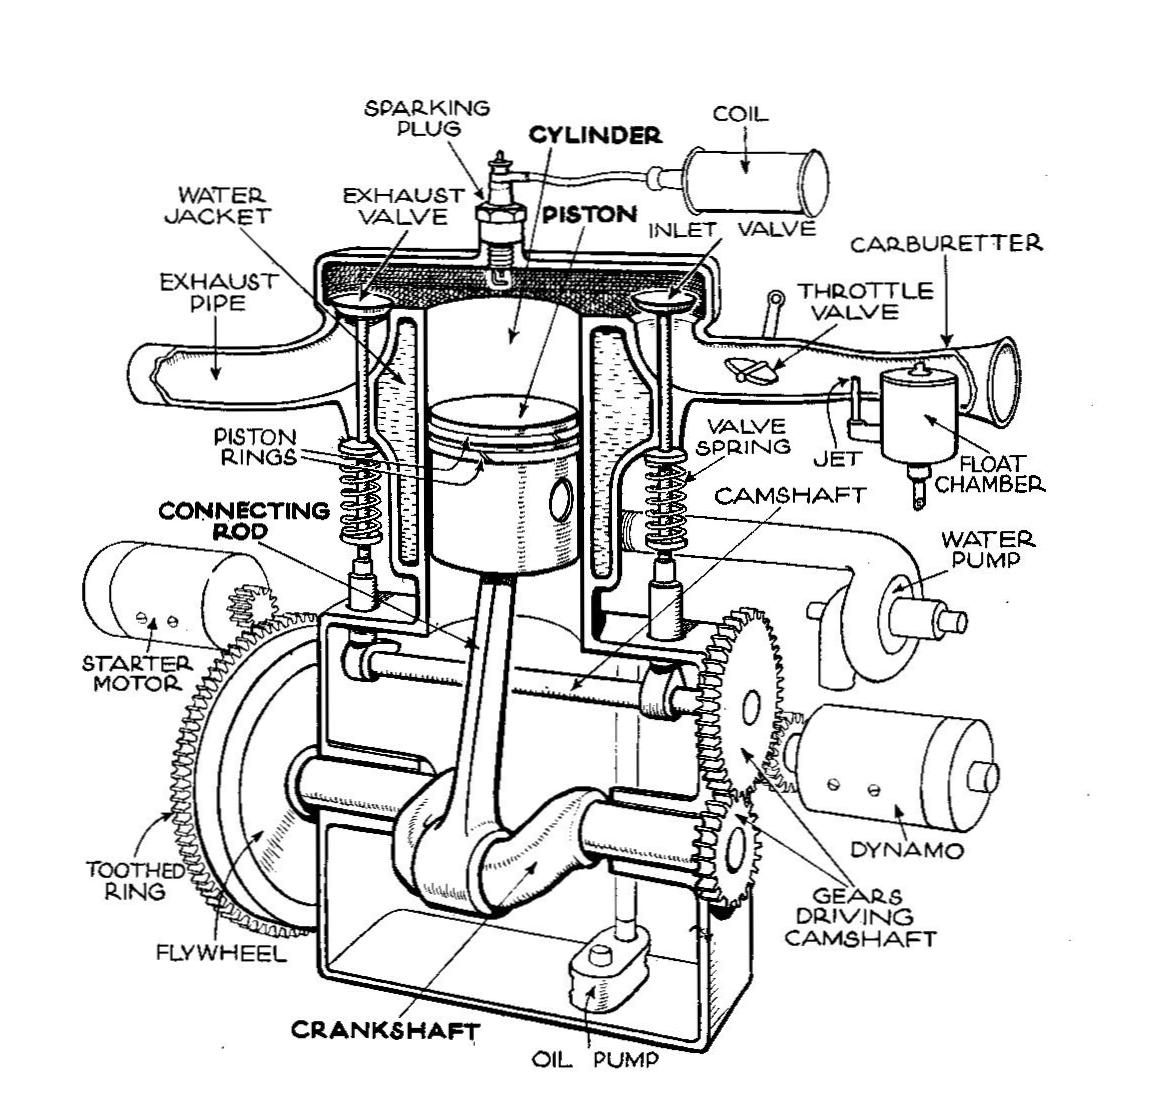 Mitsubishi 3 0 V6 Valvetrain Diagram Ask Answer Wiring 6g72 Flathead Engine Wikipedia Chrysler Daytona